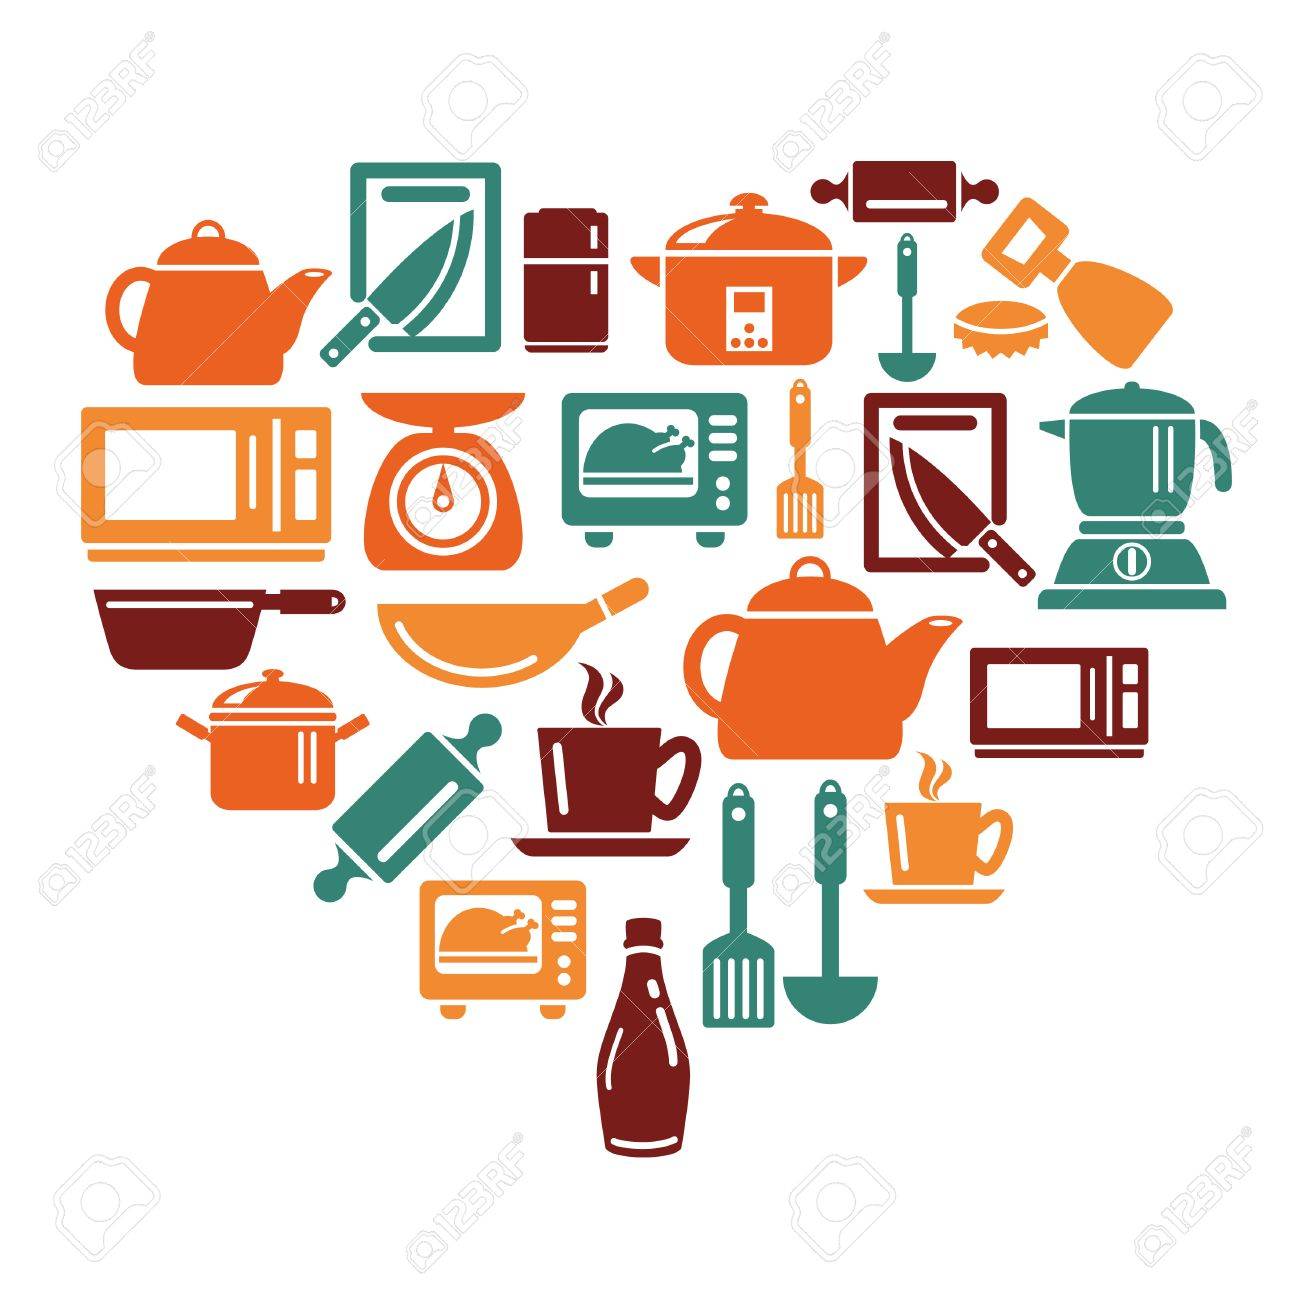 Uncategorized Kitchen Utensils And Appliances kitchen utensils and appliances icons in heart shape royalty free stock vector 30486456